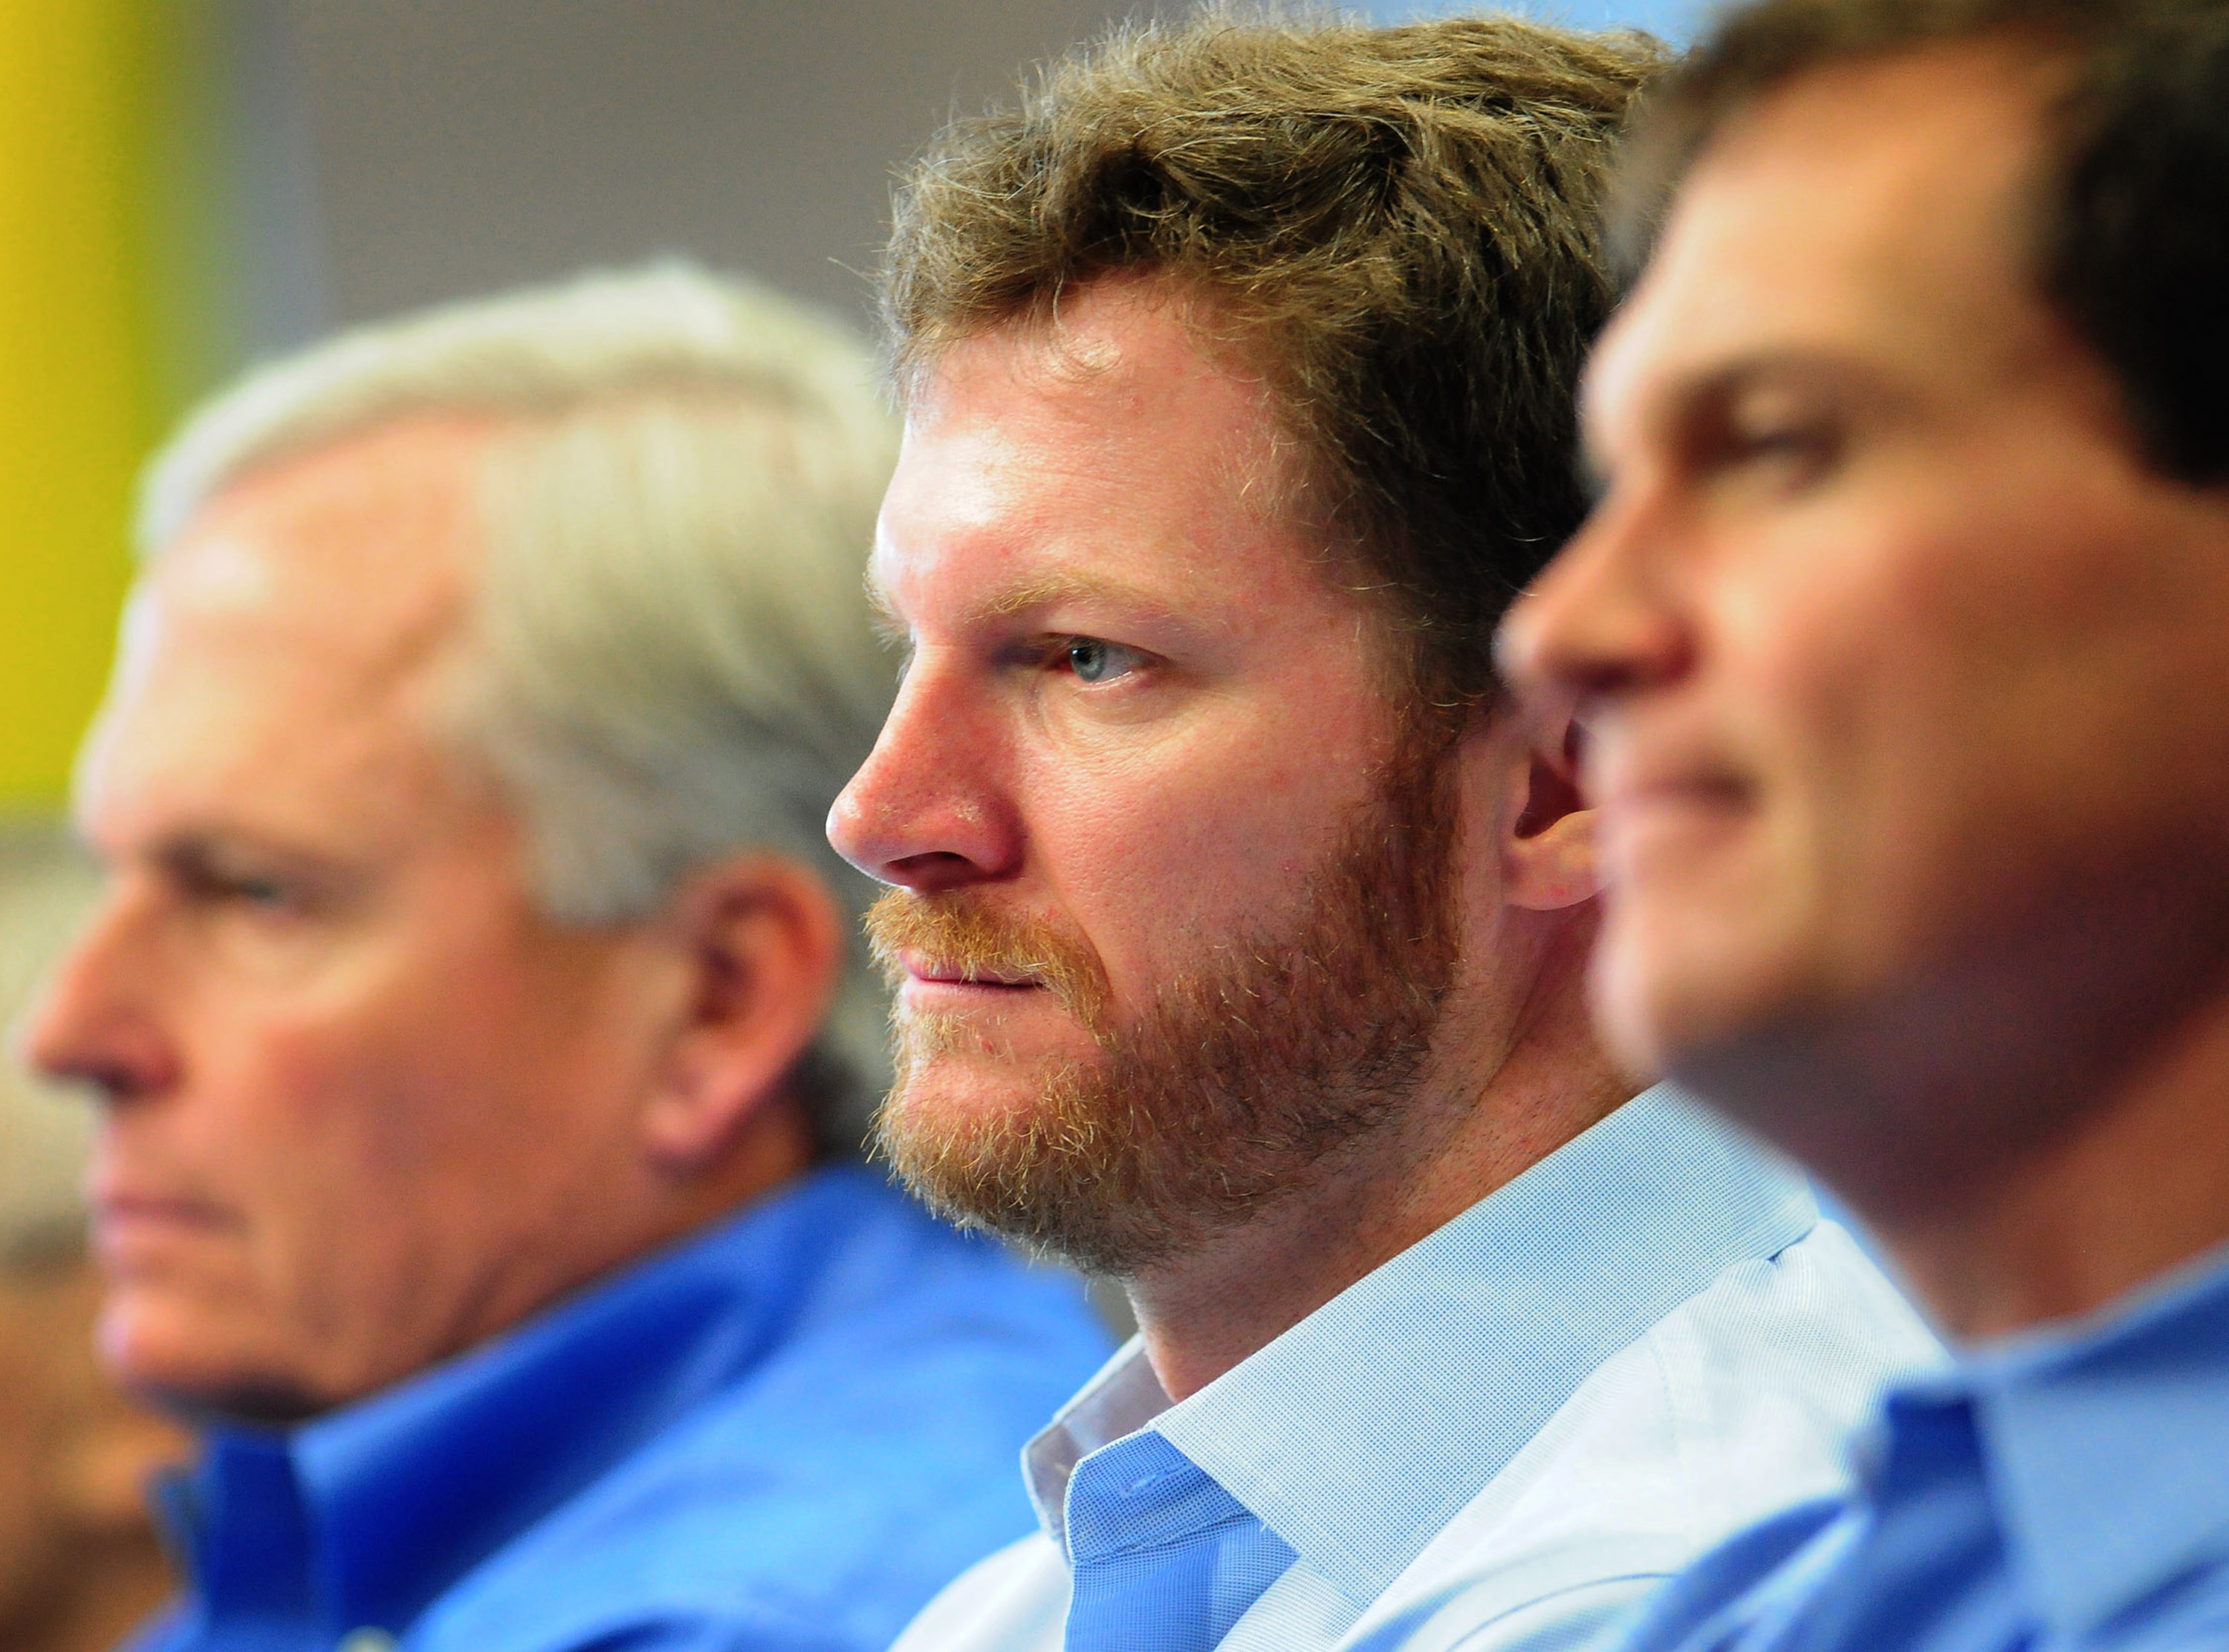 Dale Earnhardt Jr. explained what not to do when you cause a wreck.